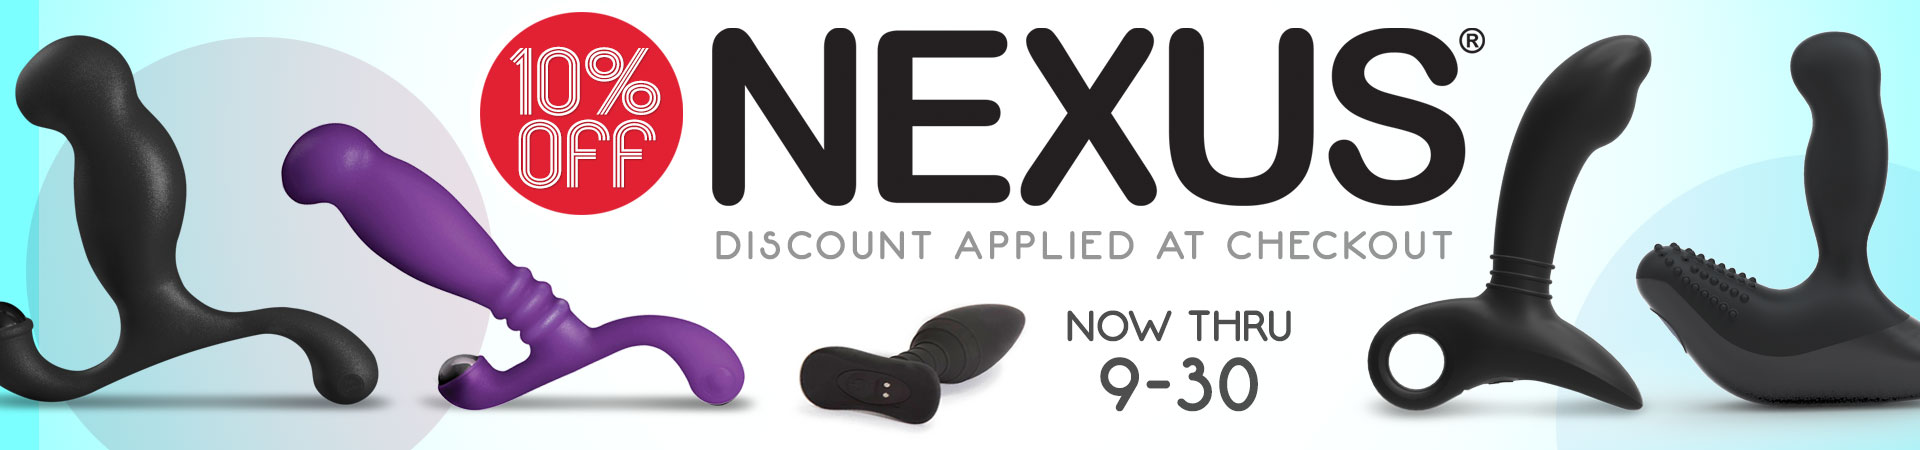 SheVibe September Sale Nexus Prostate Toys